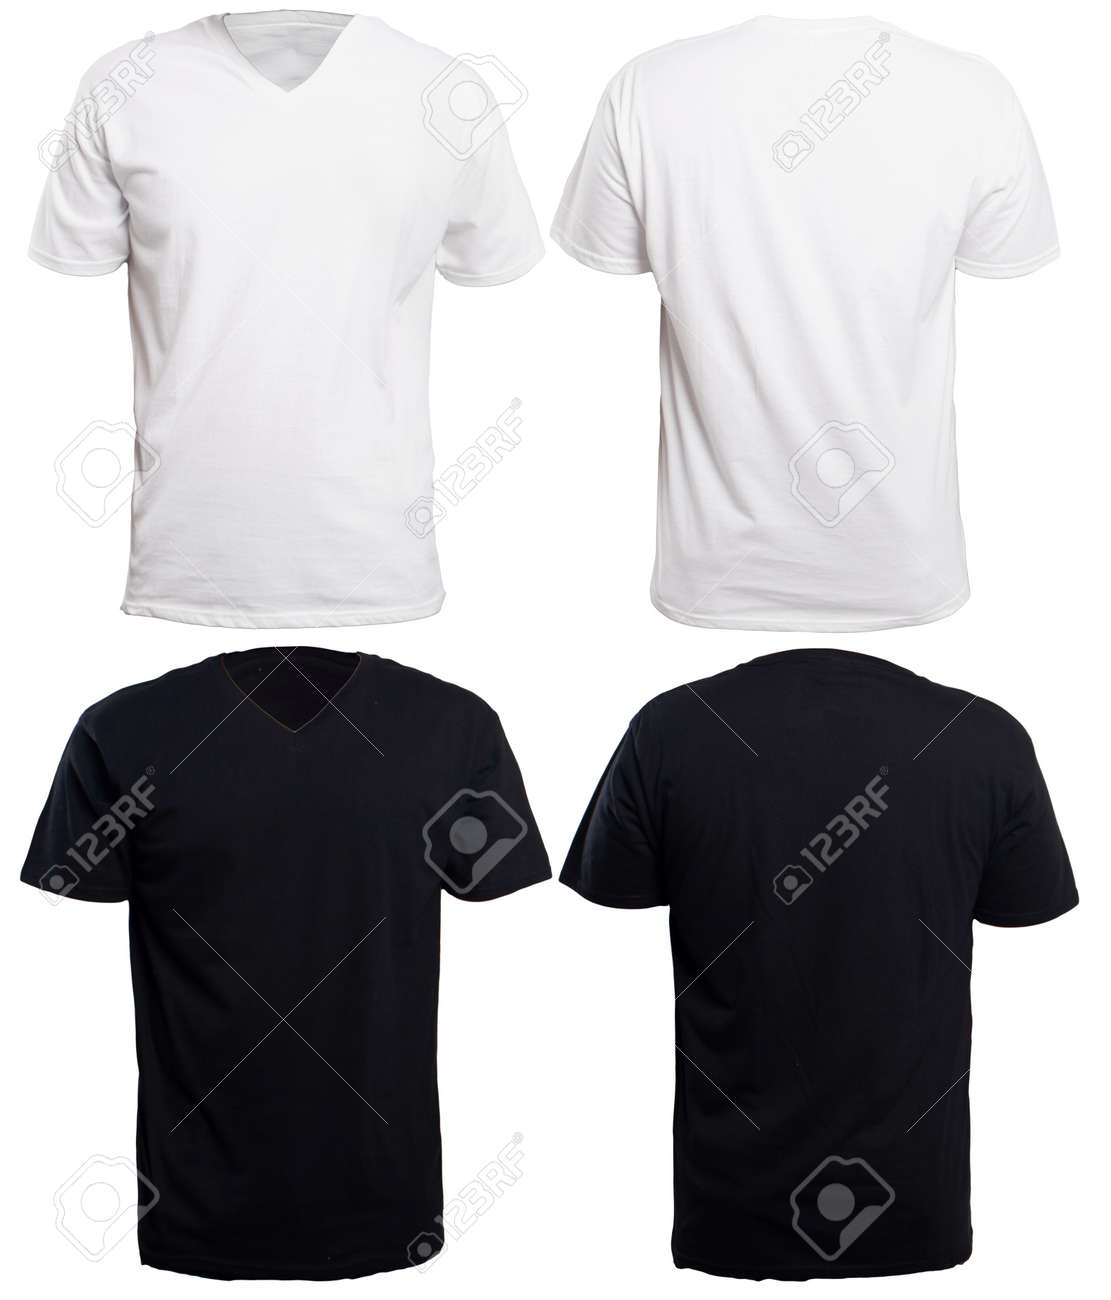 Blank V Neck Shirt Mock Up Template Front And Back View Isolated On